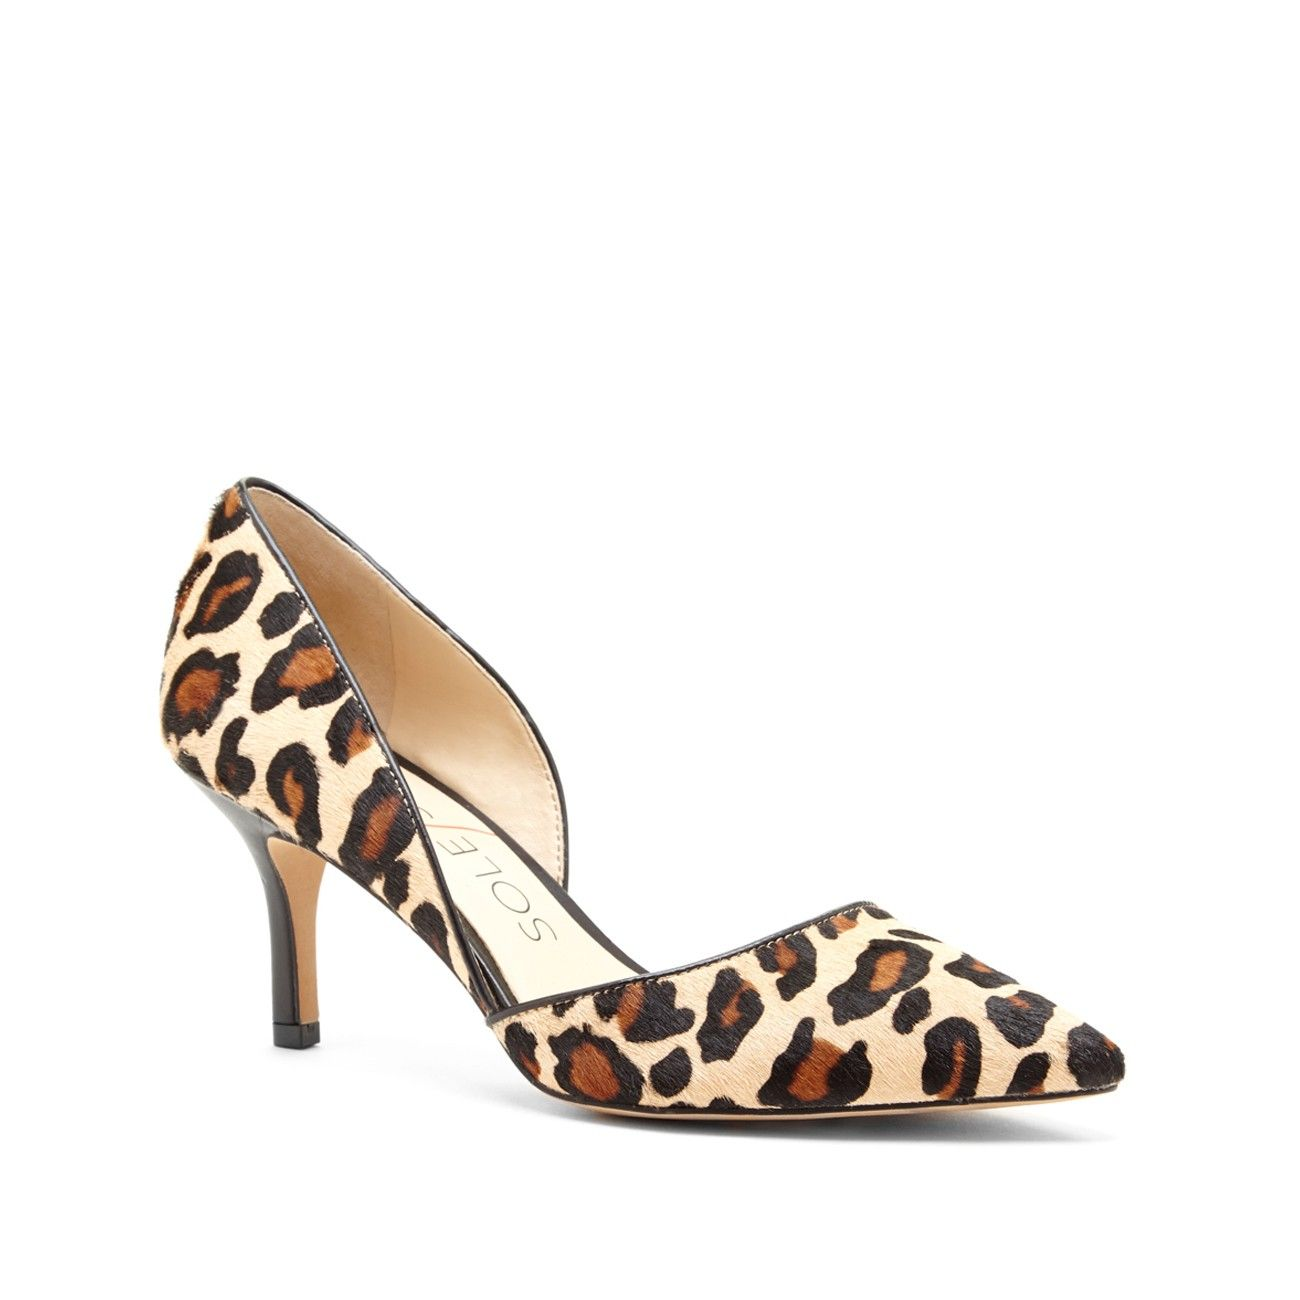 Sole Society Printed Mid-heel Pumps - Jenn cheap sale authentic factory outlet sale online wSLajl2iat